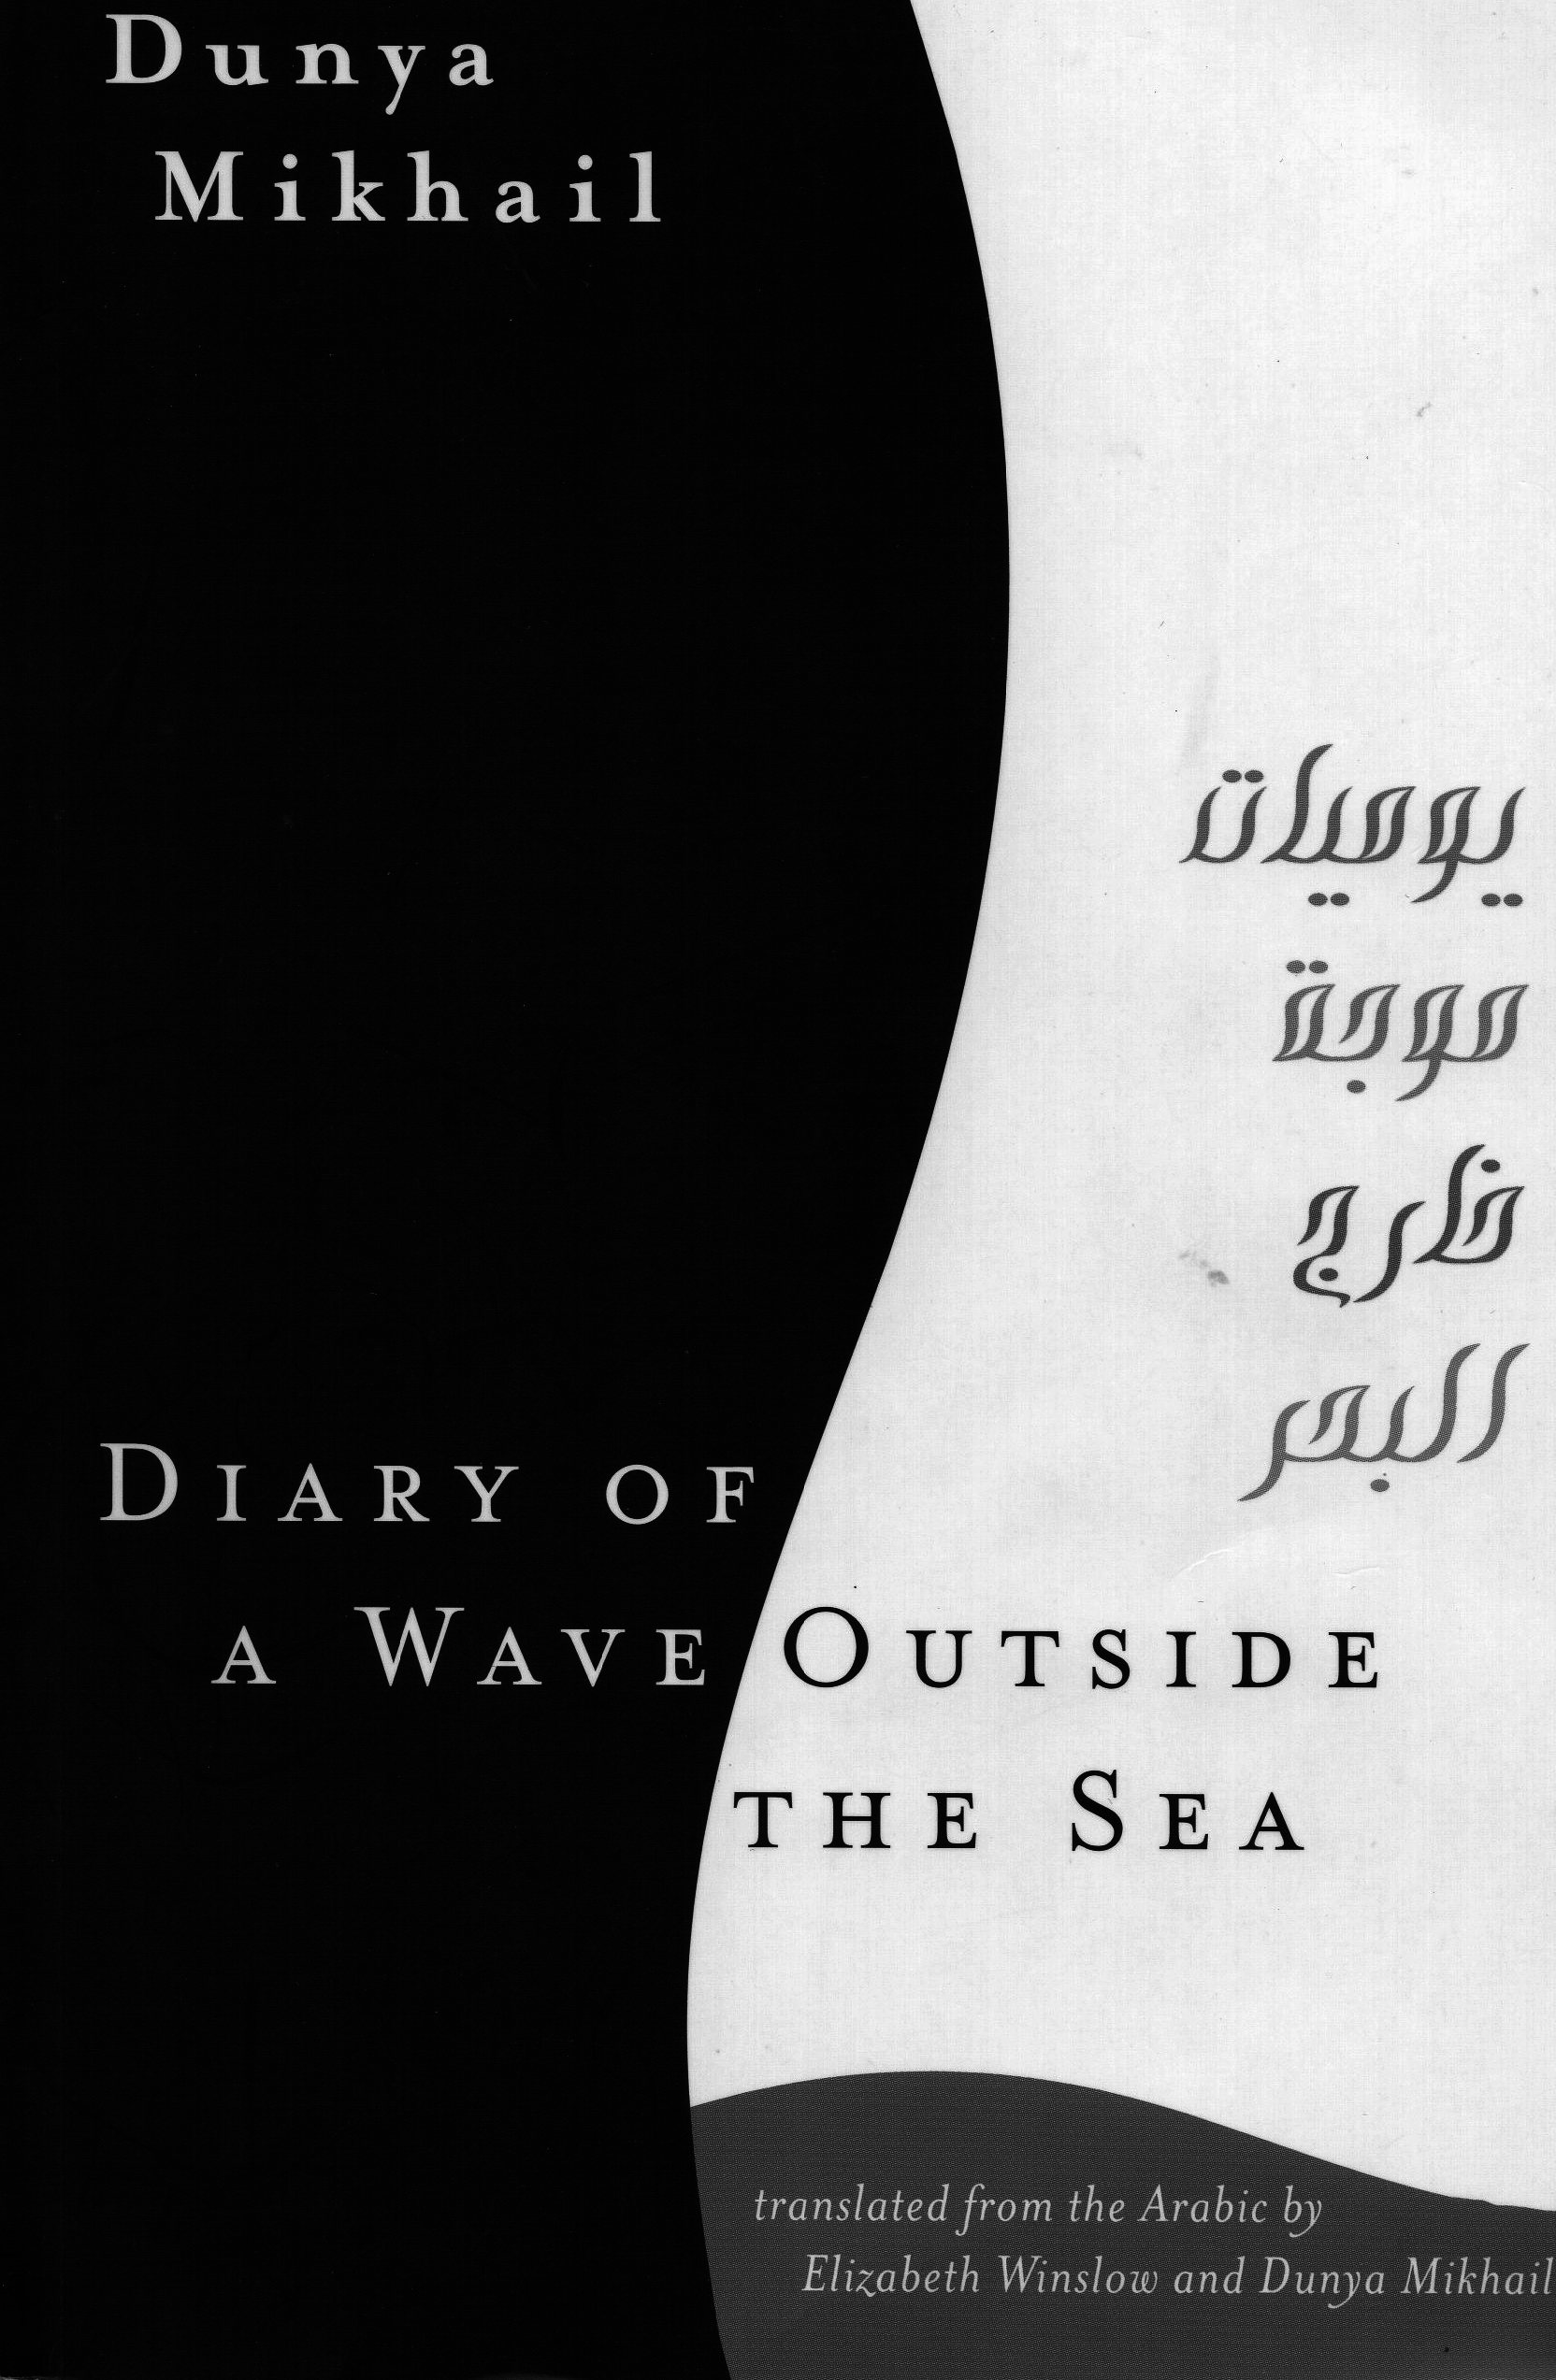 Diary of a Wave Outside the Sea by Dunya Mikhai